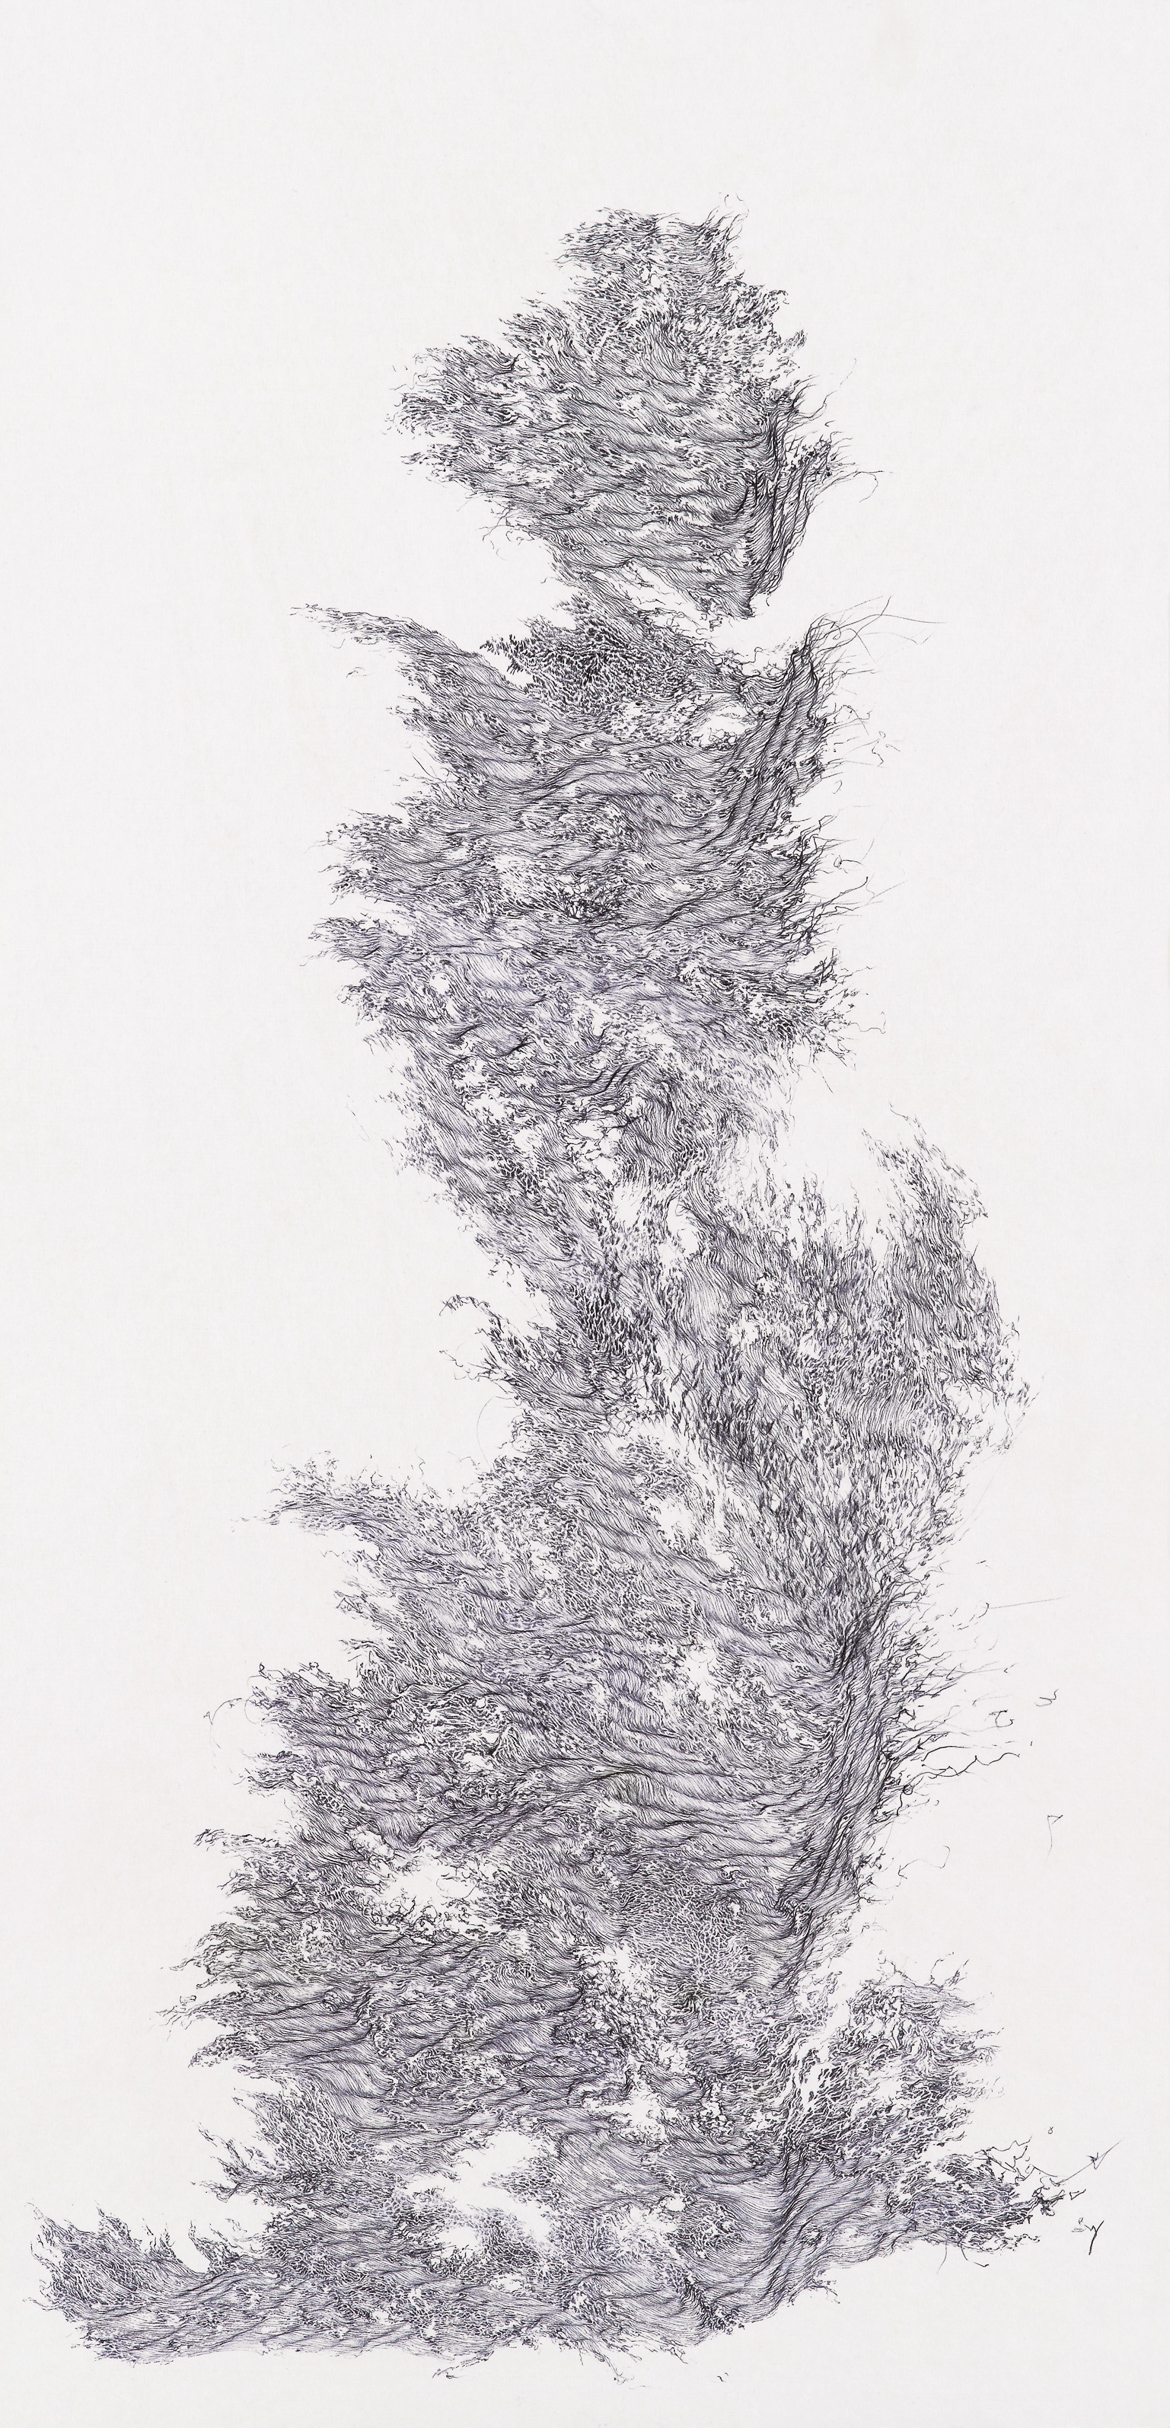 [21] a moment of truth 4, ball pen on paper, 1 ft (width)x 2 ft (height), 2012